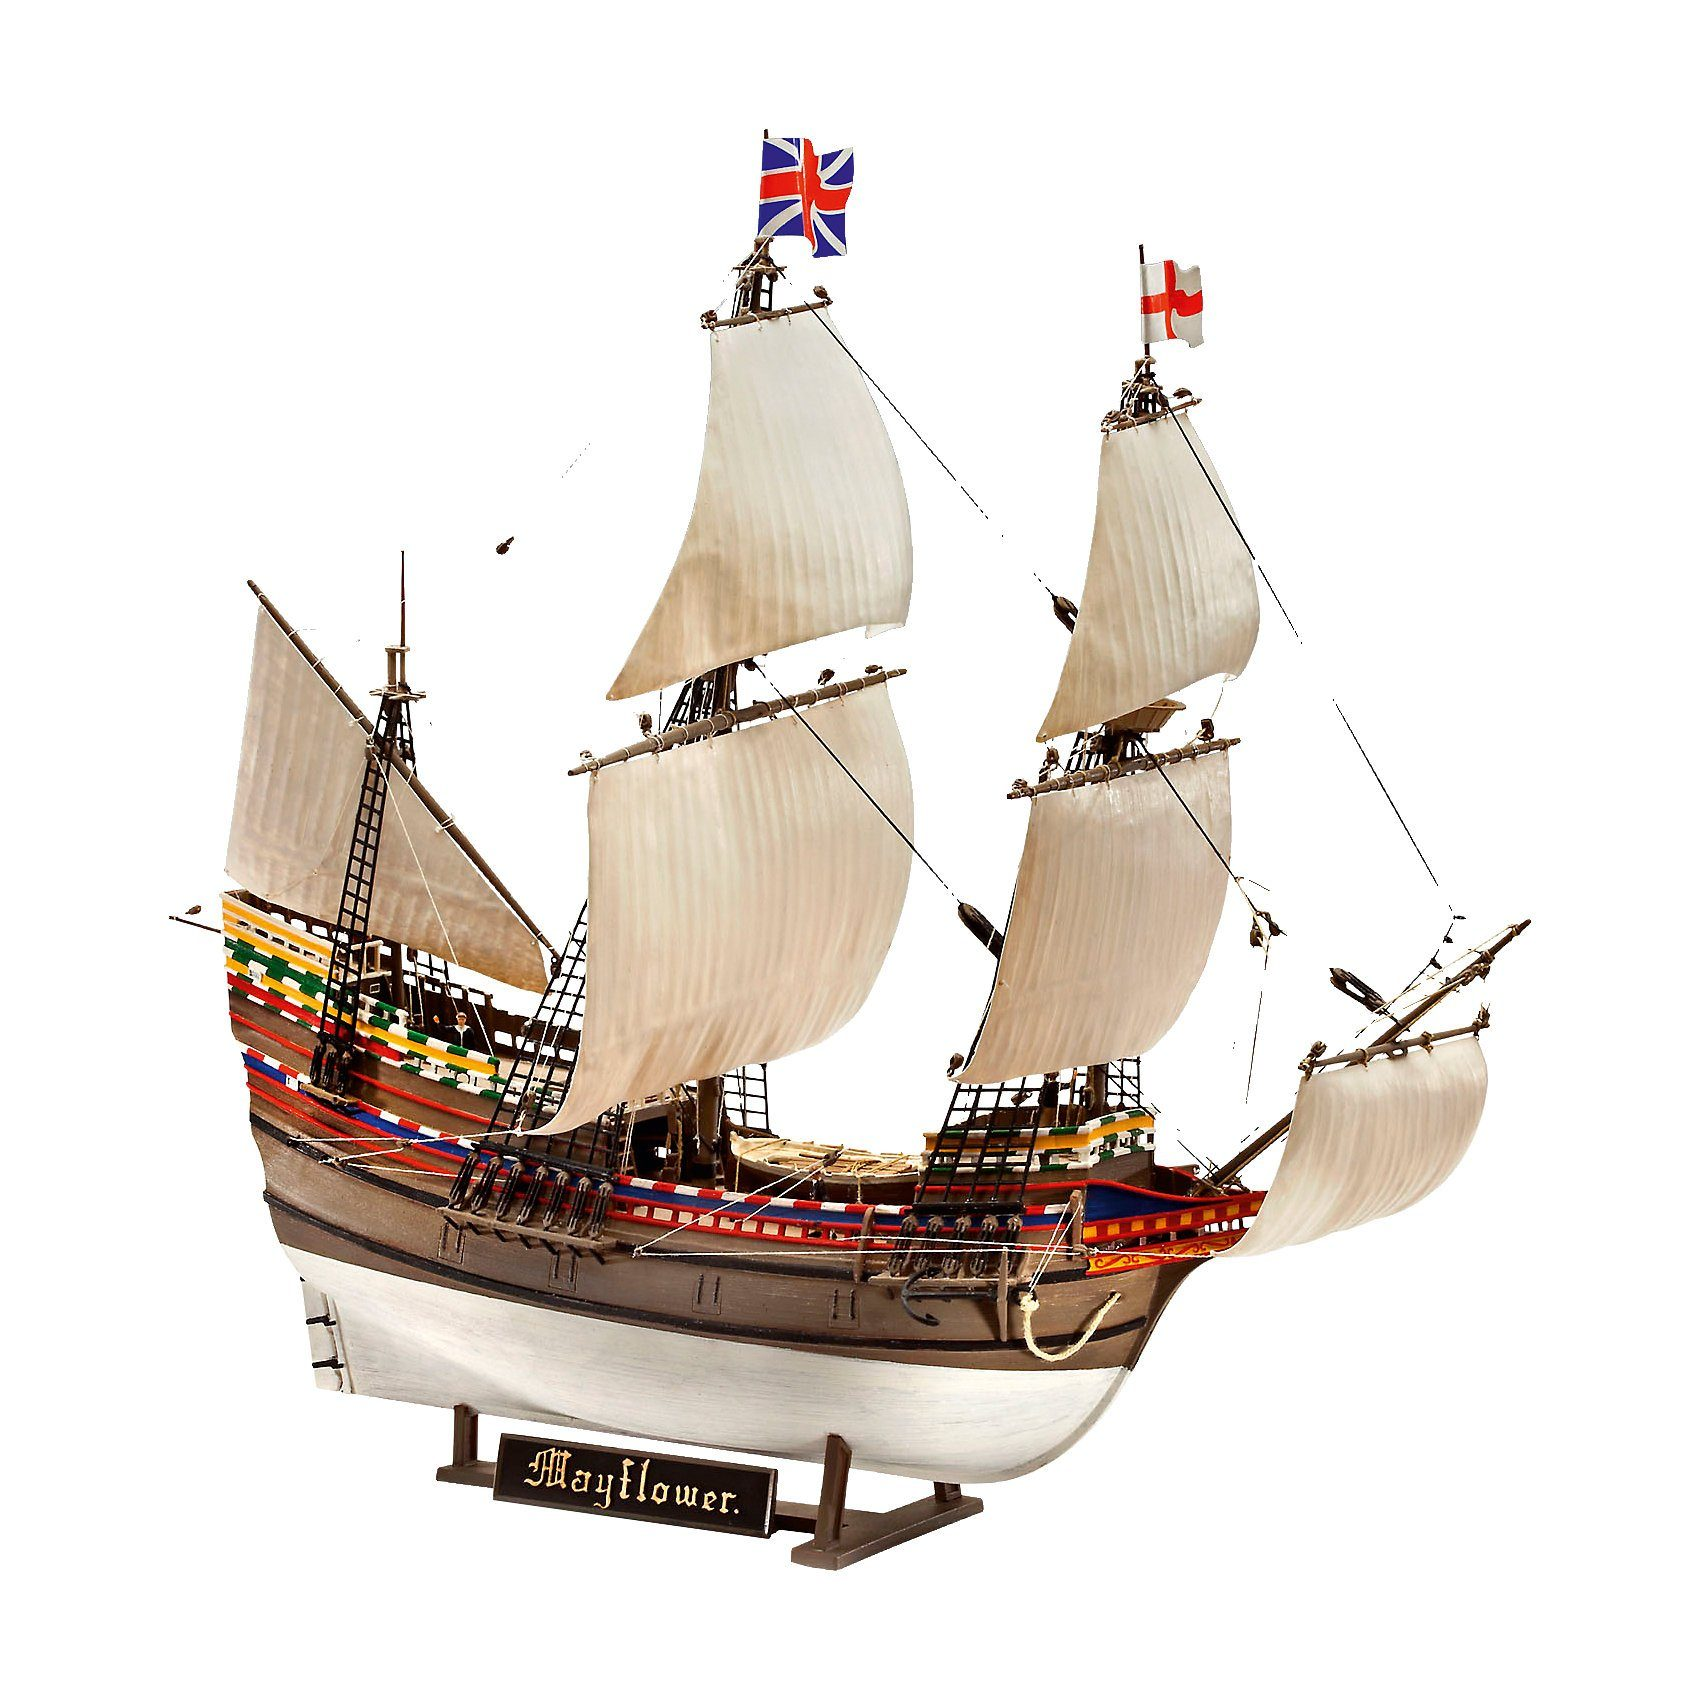 Revell Modellbausatz - Pilgrim Ship MAYFLOWER